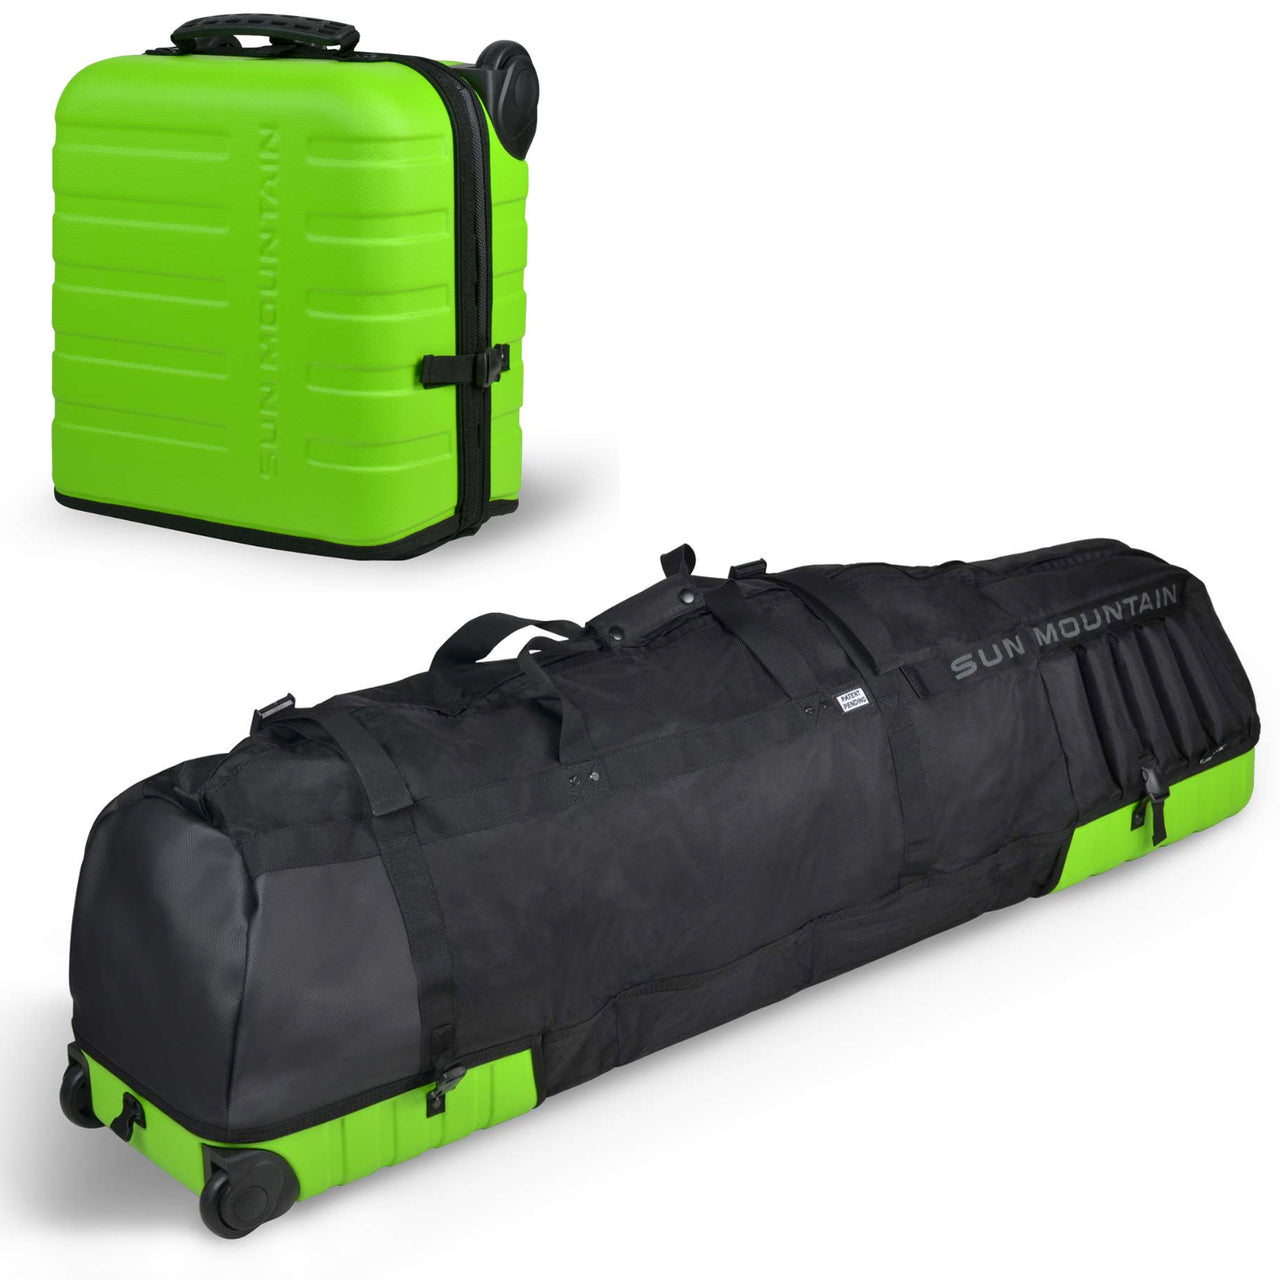 Sun Mountain Kube Travel Cover